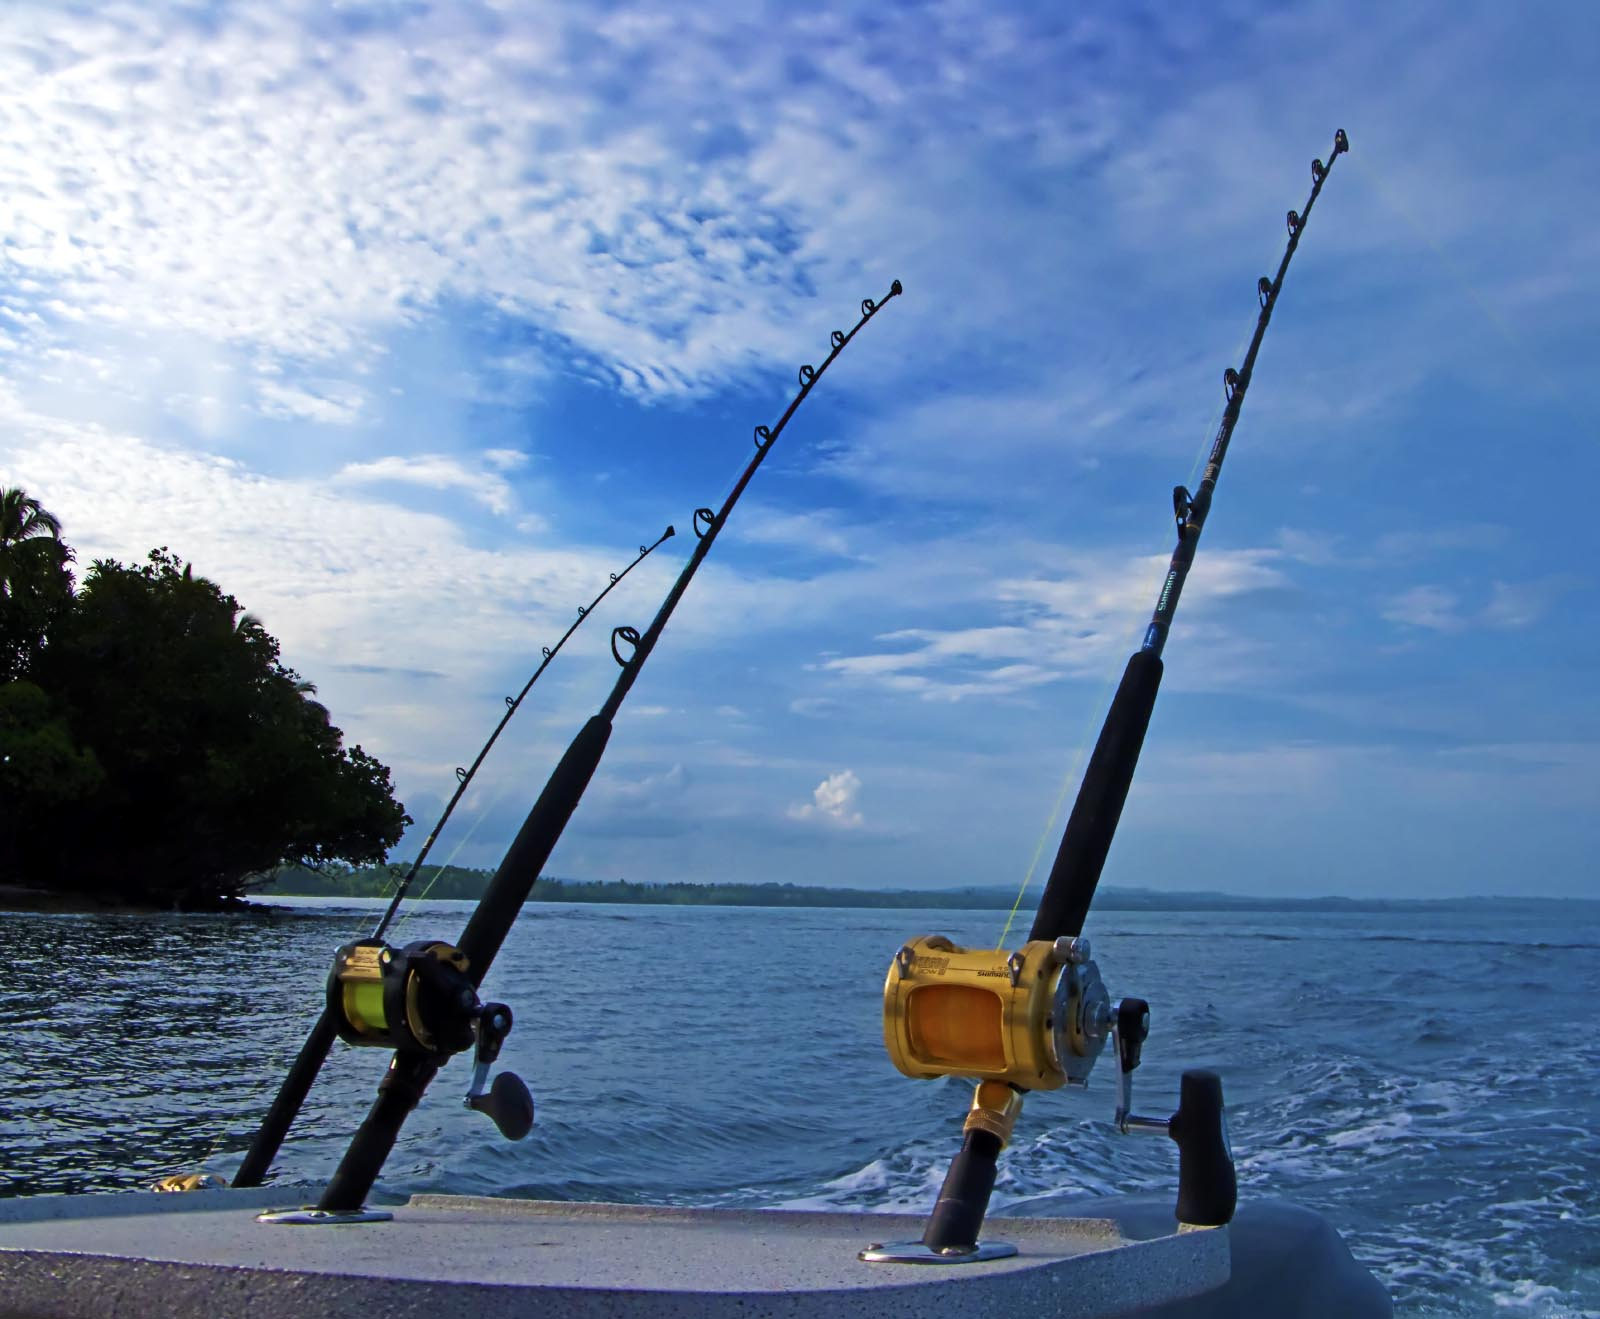 manuel antonio costa rica fishing trip